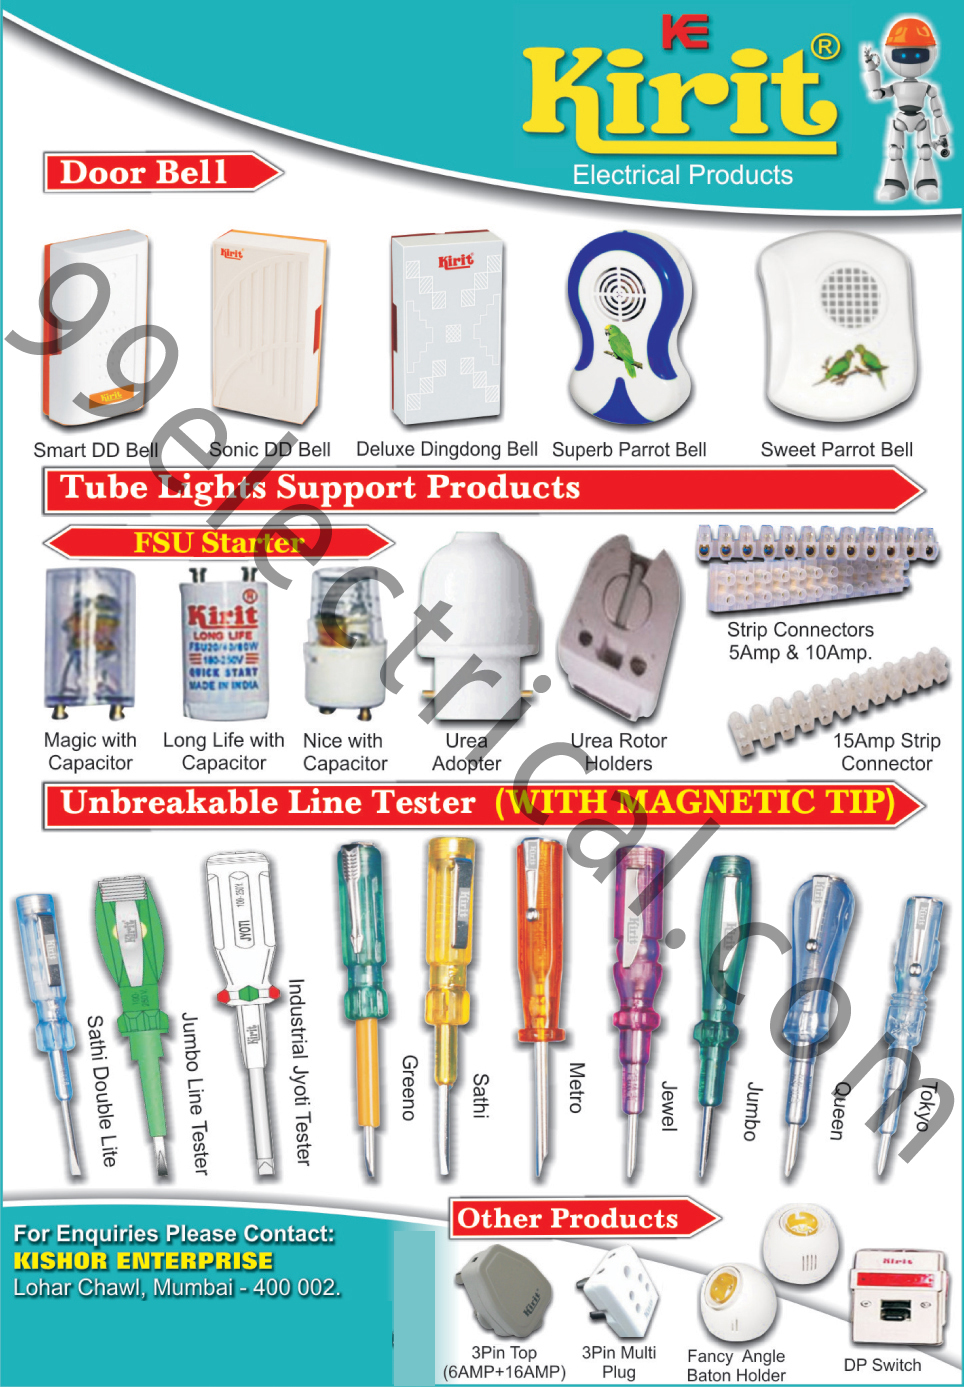 Electrical Accessories, Electrical Equipment, Door Bell, Electrical Products, Unbreakable Line Tester, Tube Light Support Products, Line Tester, Tube Light Support Products, Capacitor, Adopter, Holder, Connector, Strip Connectors, Tester, Plug, DP Switch, Multi Plug, Line Tester, 3 Pin Multi Plugs, Three Pin Multi Plugs, Fancy Angle Adapters, Angle Adapters, Urea Adapters, Electrical Products